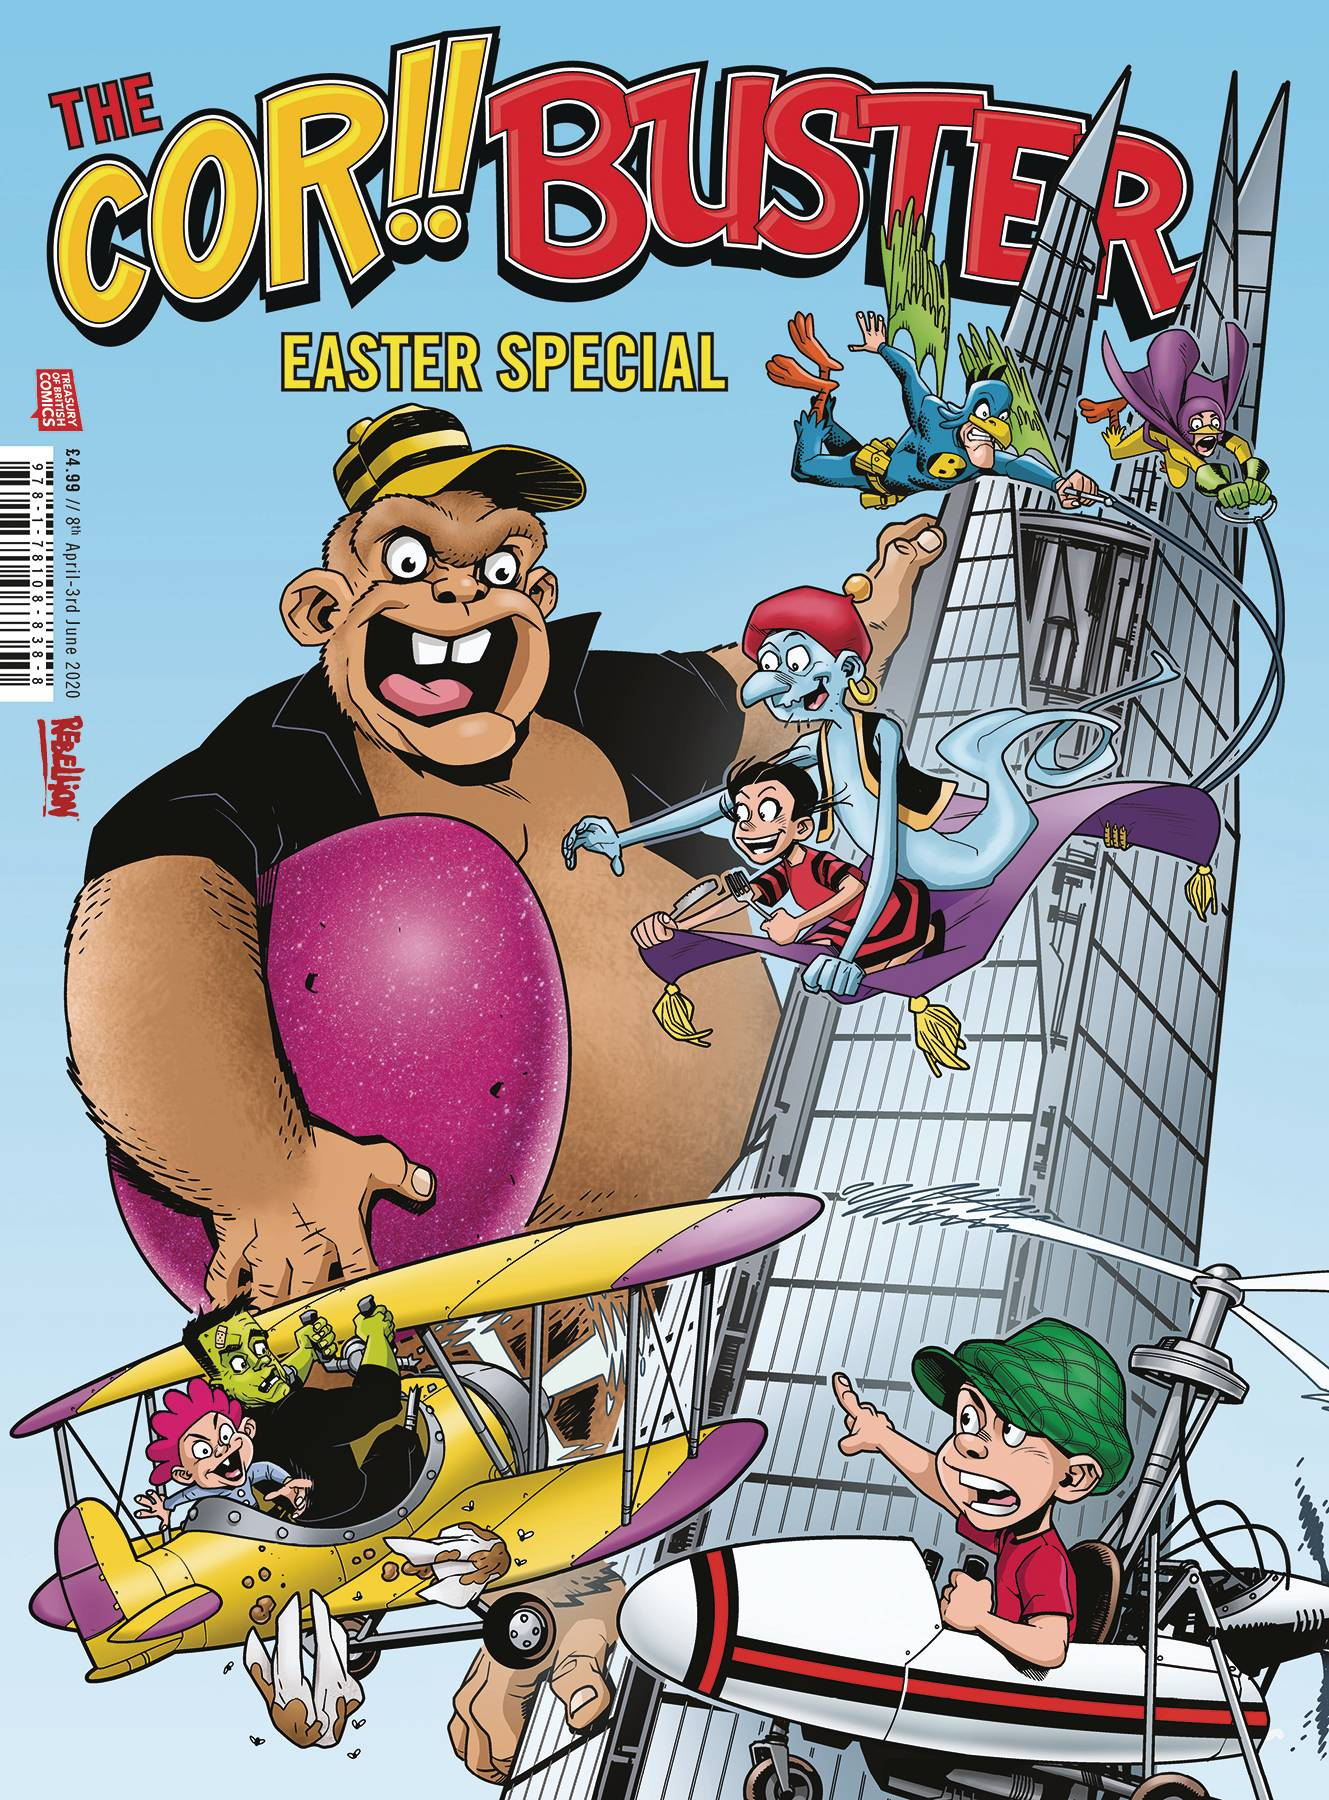 Cor!! Buster Easter Special 2020 #1 (2020)